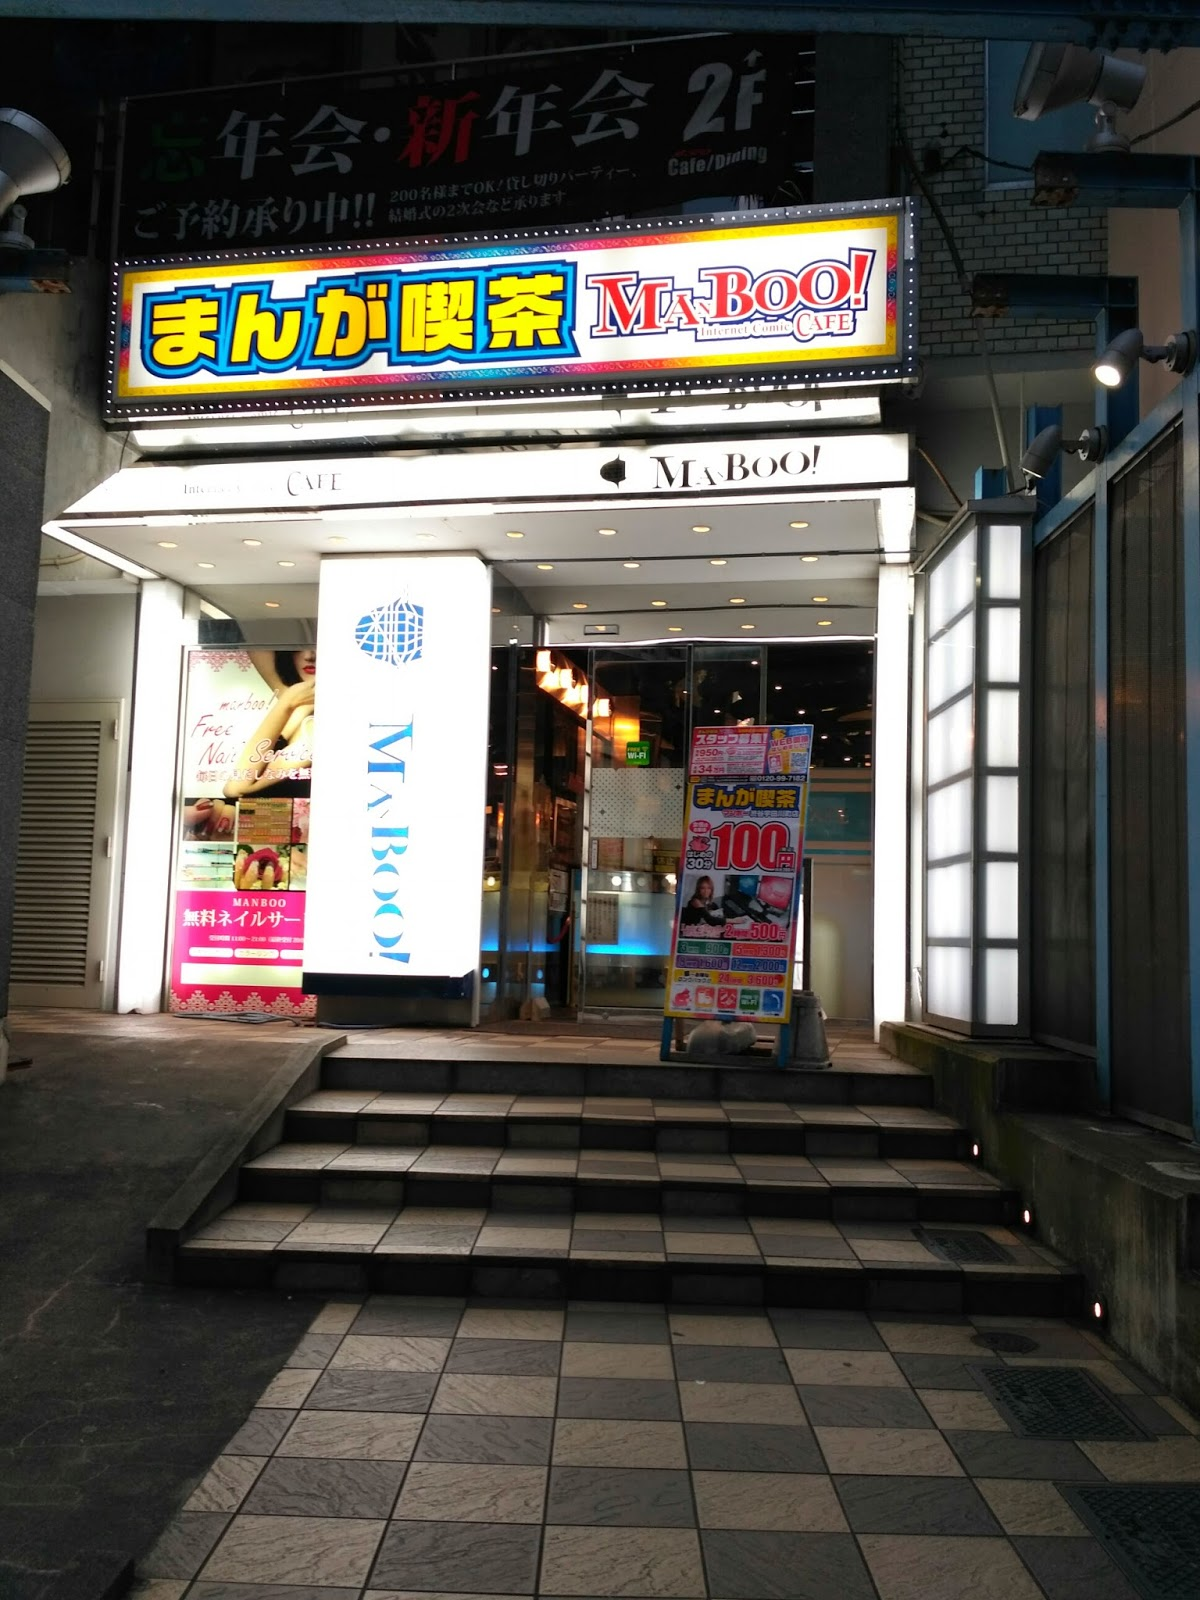 Where Are The Most Japense Internet Cafes At